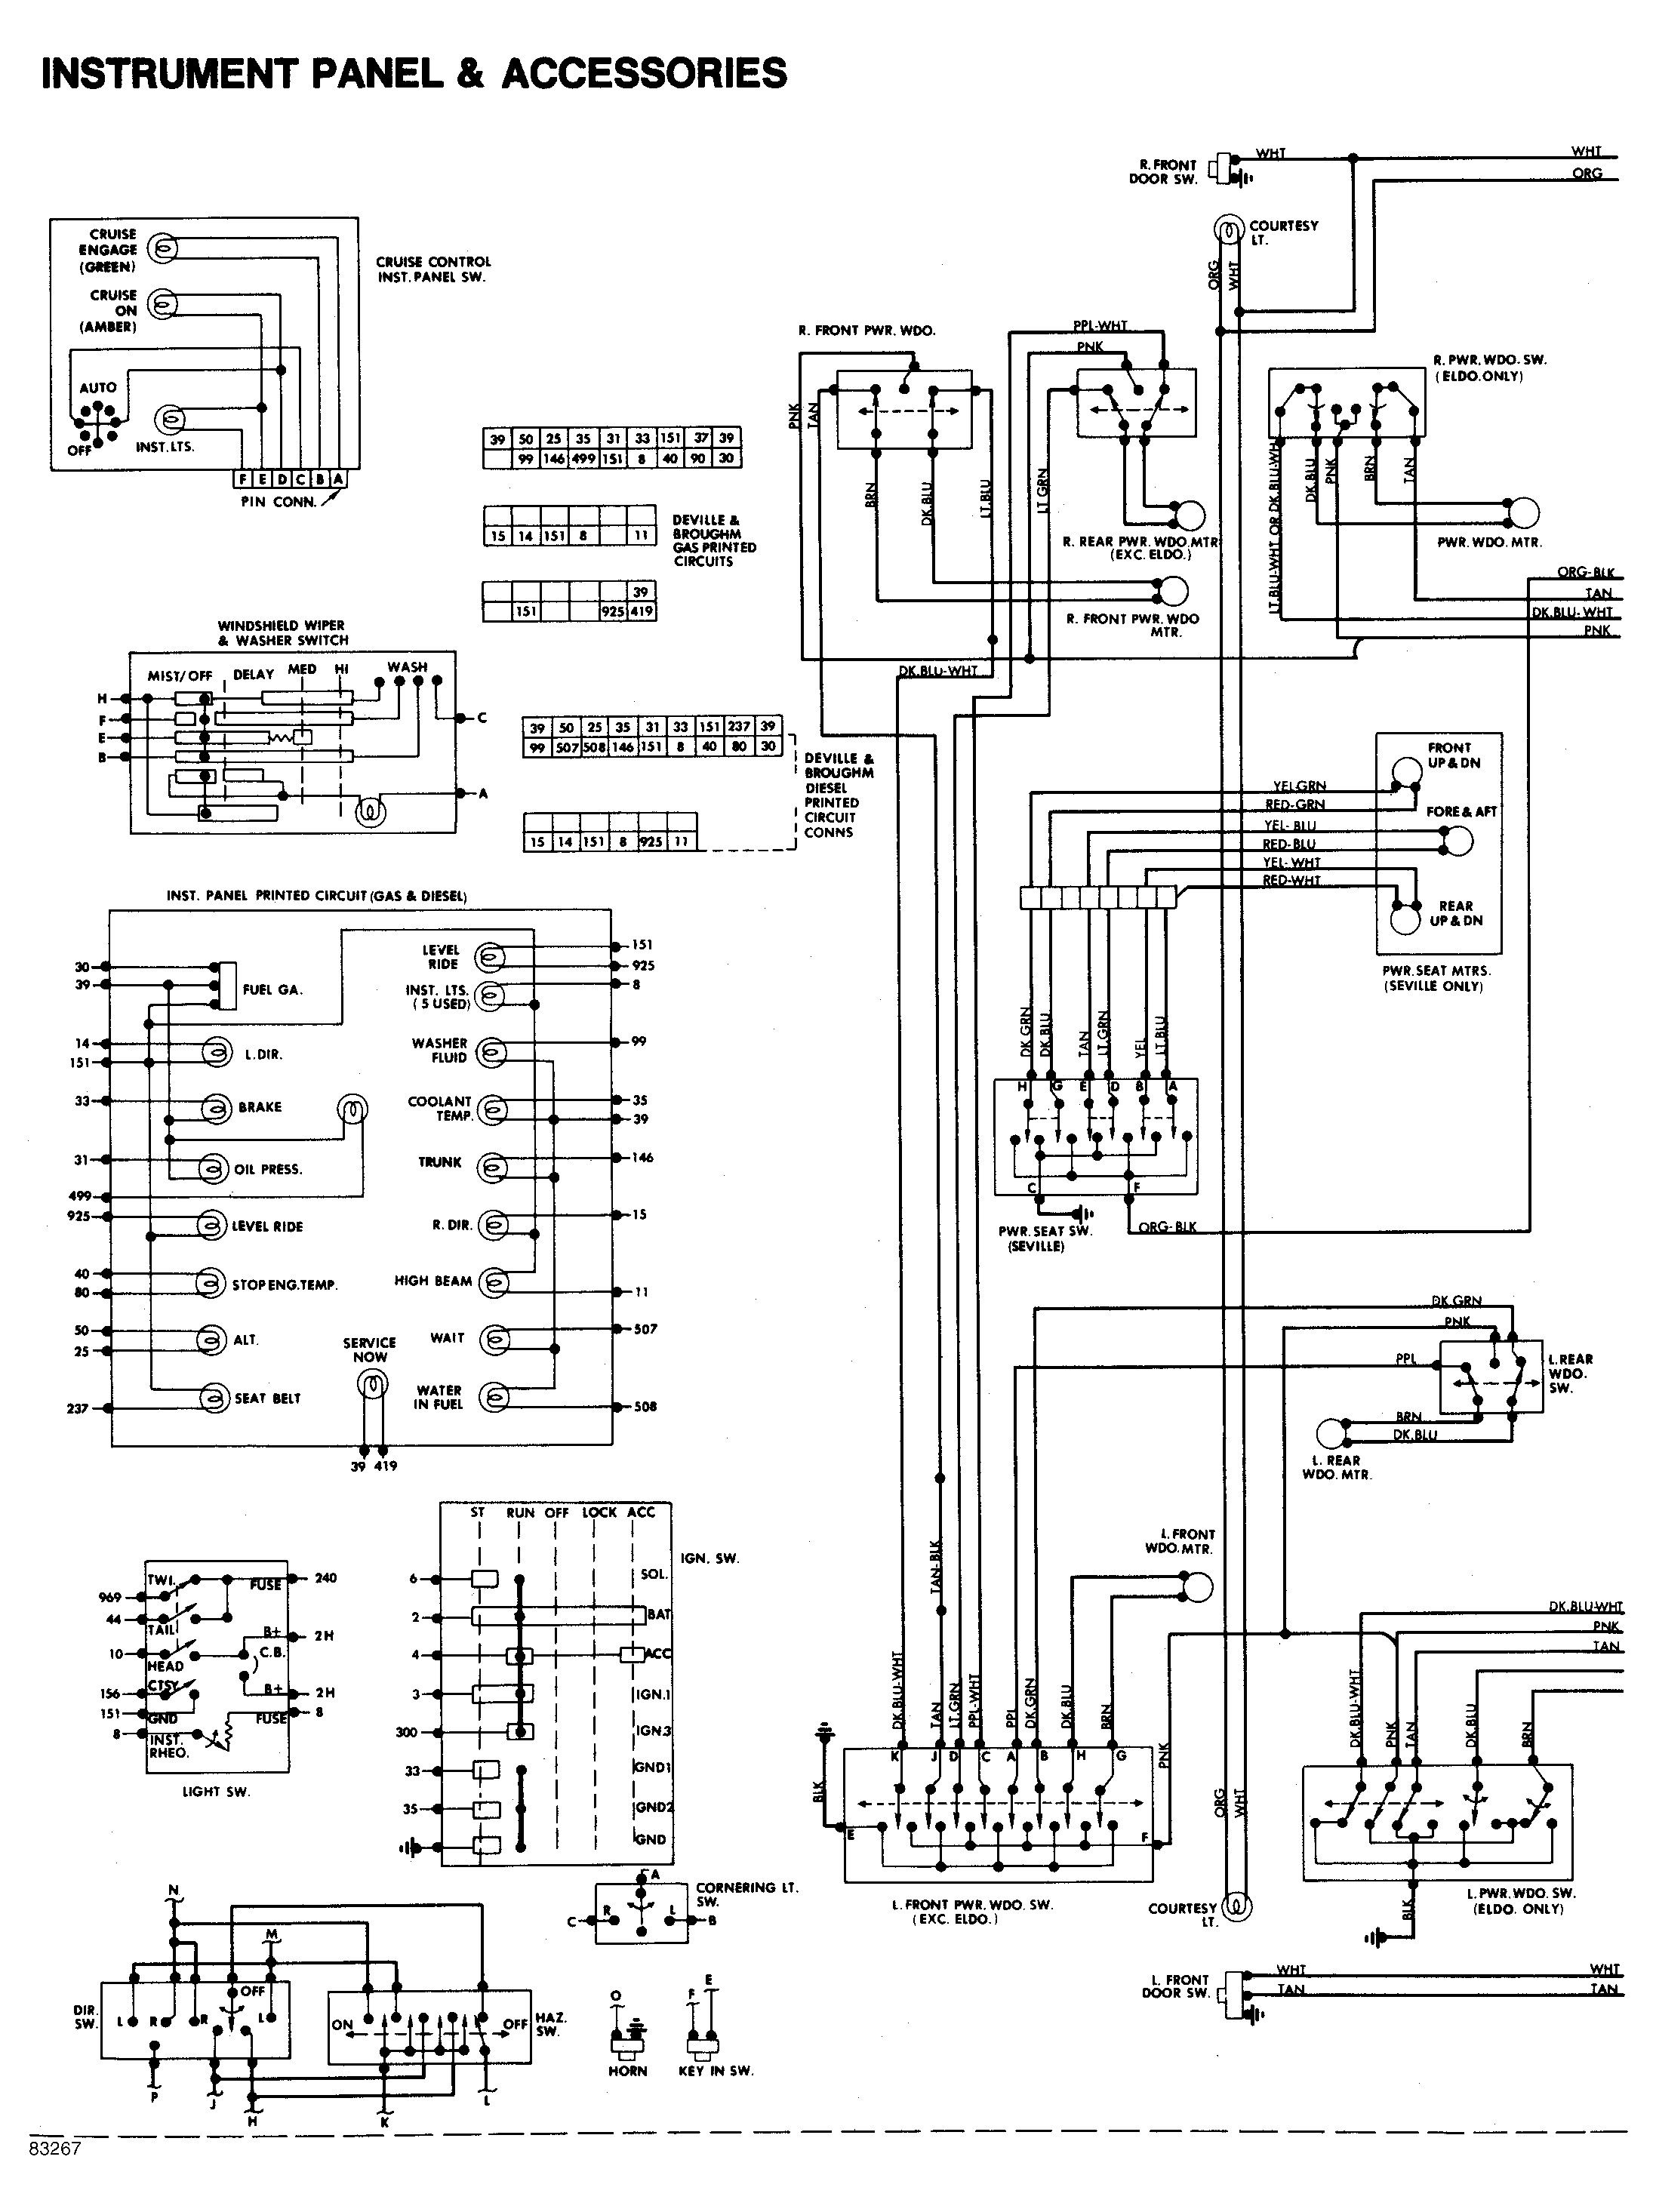 2000 daewoo leganza wiring diagram wiring library2000 honda accord radio wiring diagram fresh daewoo leganza audio [ 2194 x 2931 Pixel ]